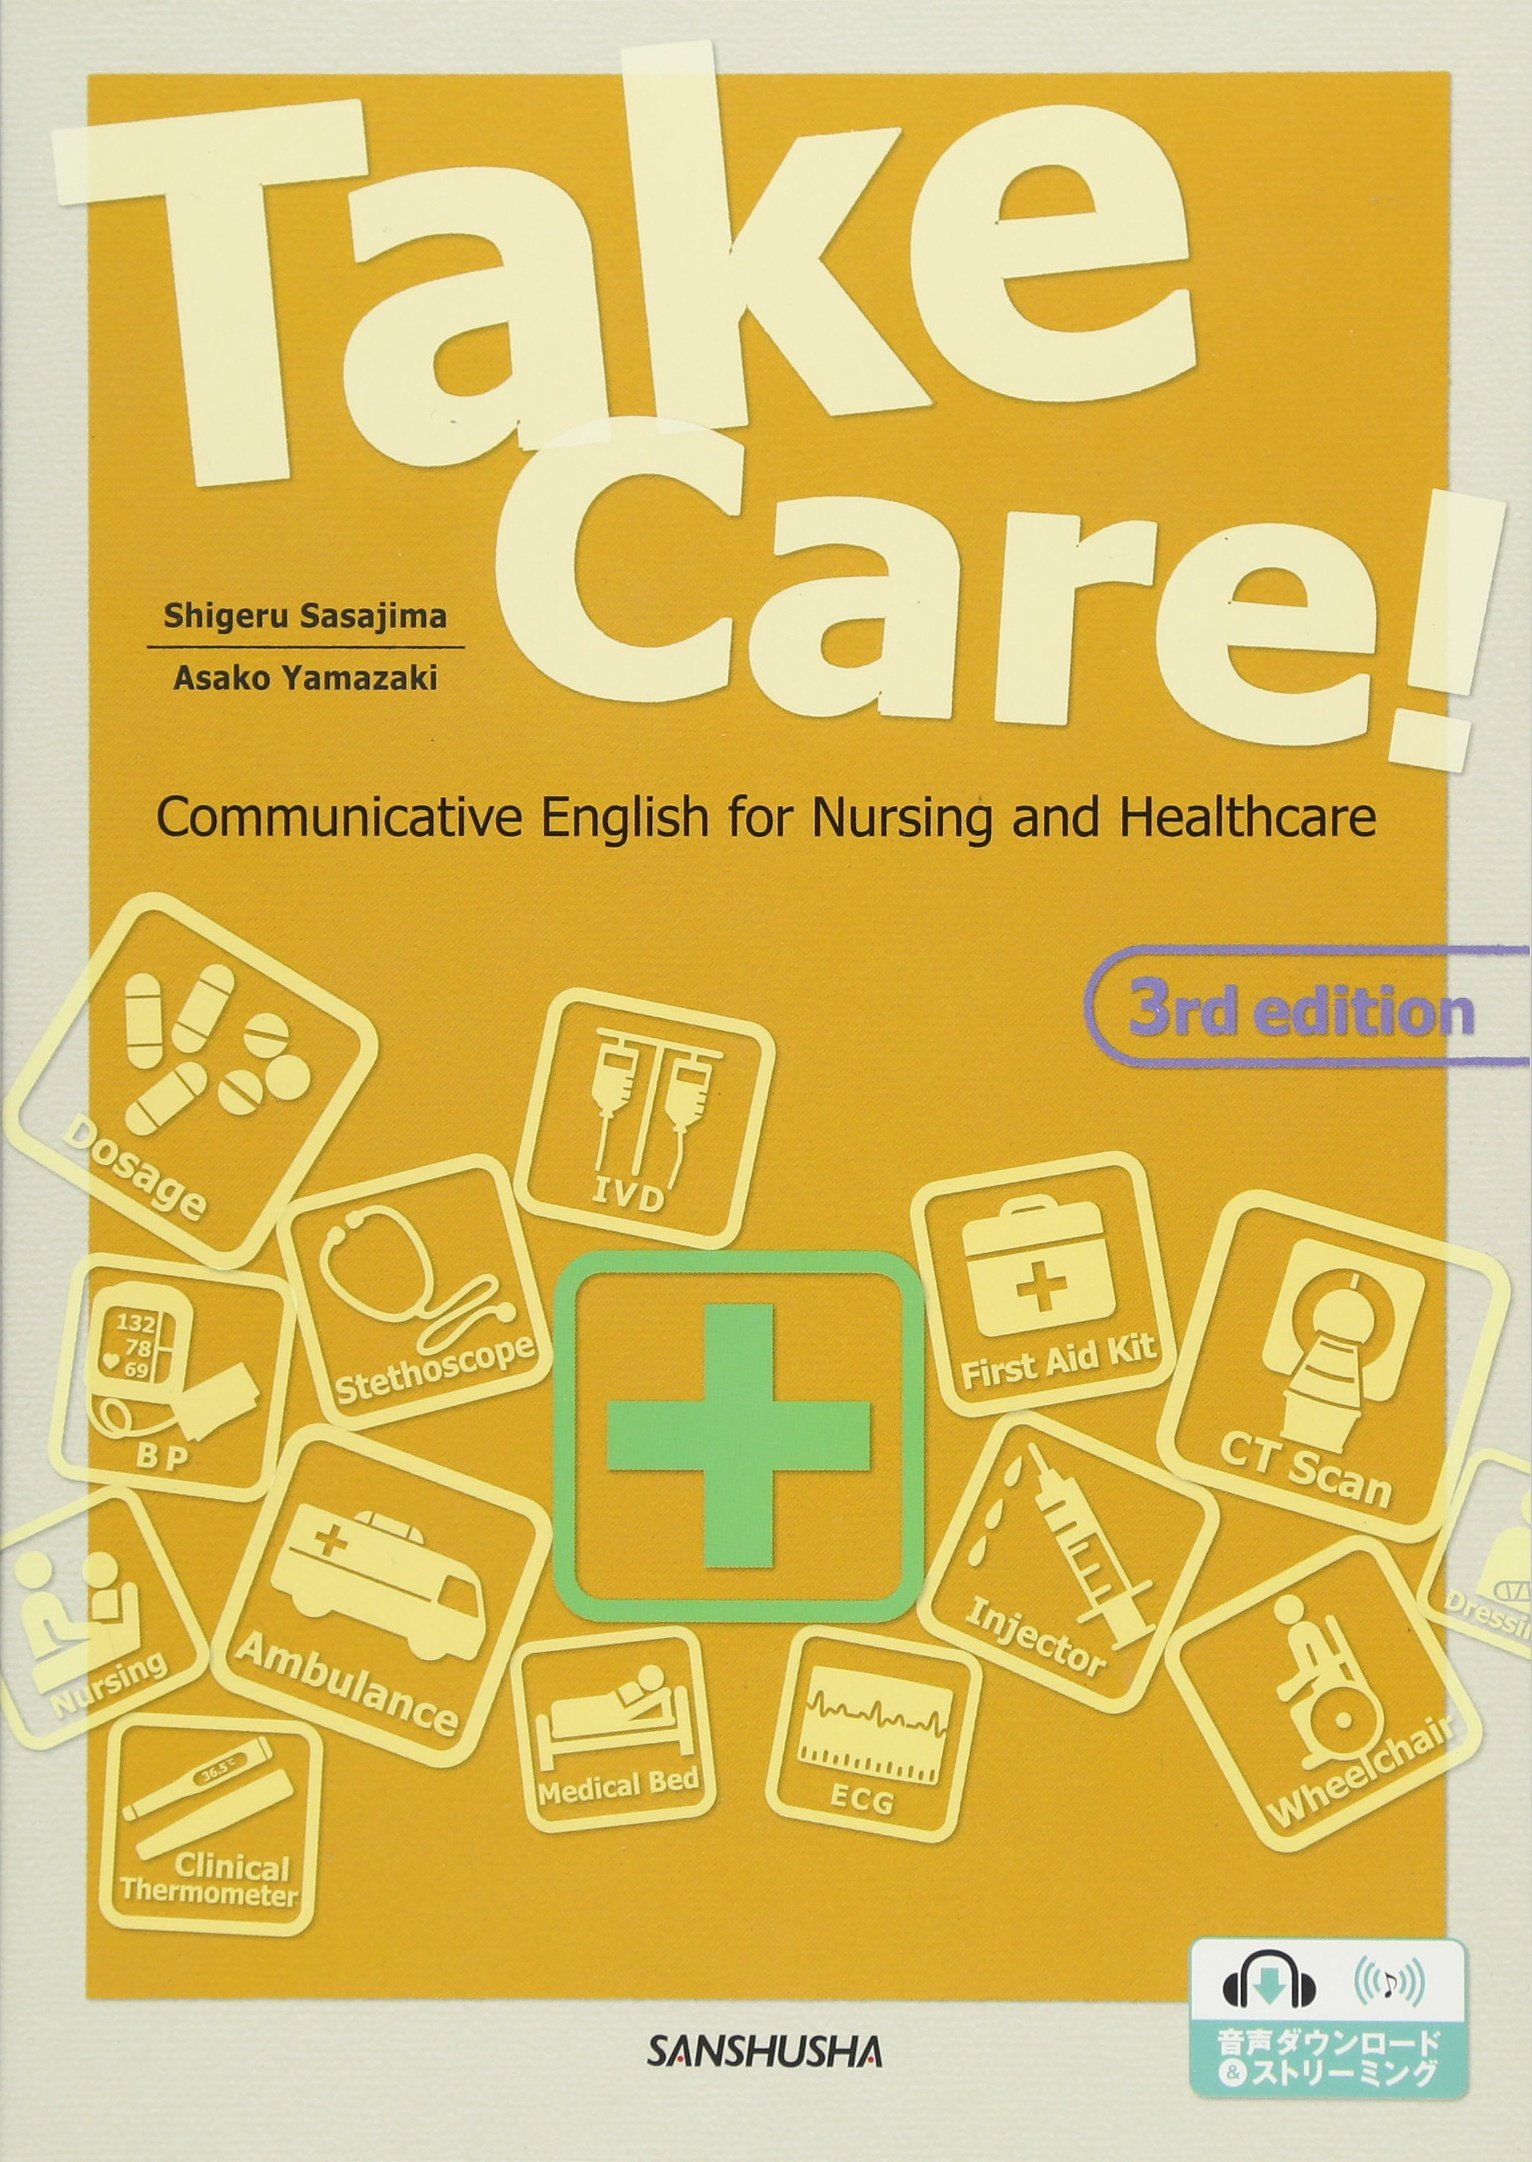 Download English take care of [third edition]-Take Care! [Third Edition] Communicative English for Nursing and Healthcare ebook